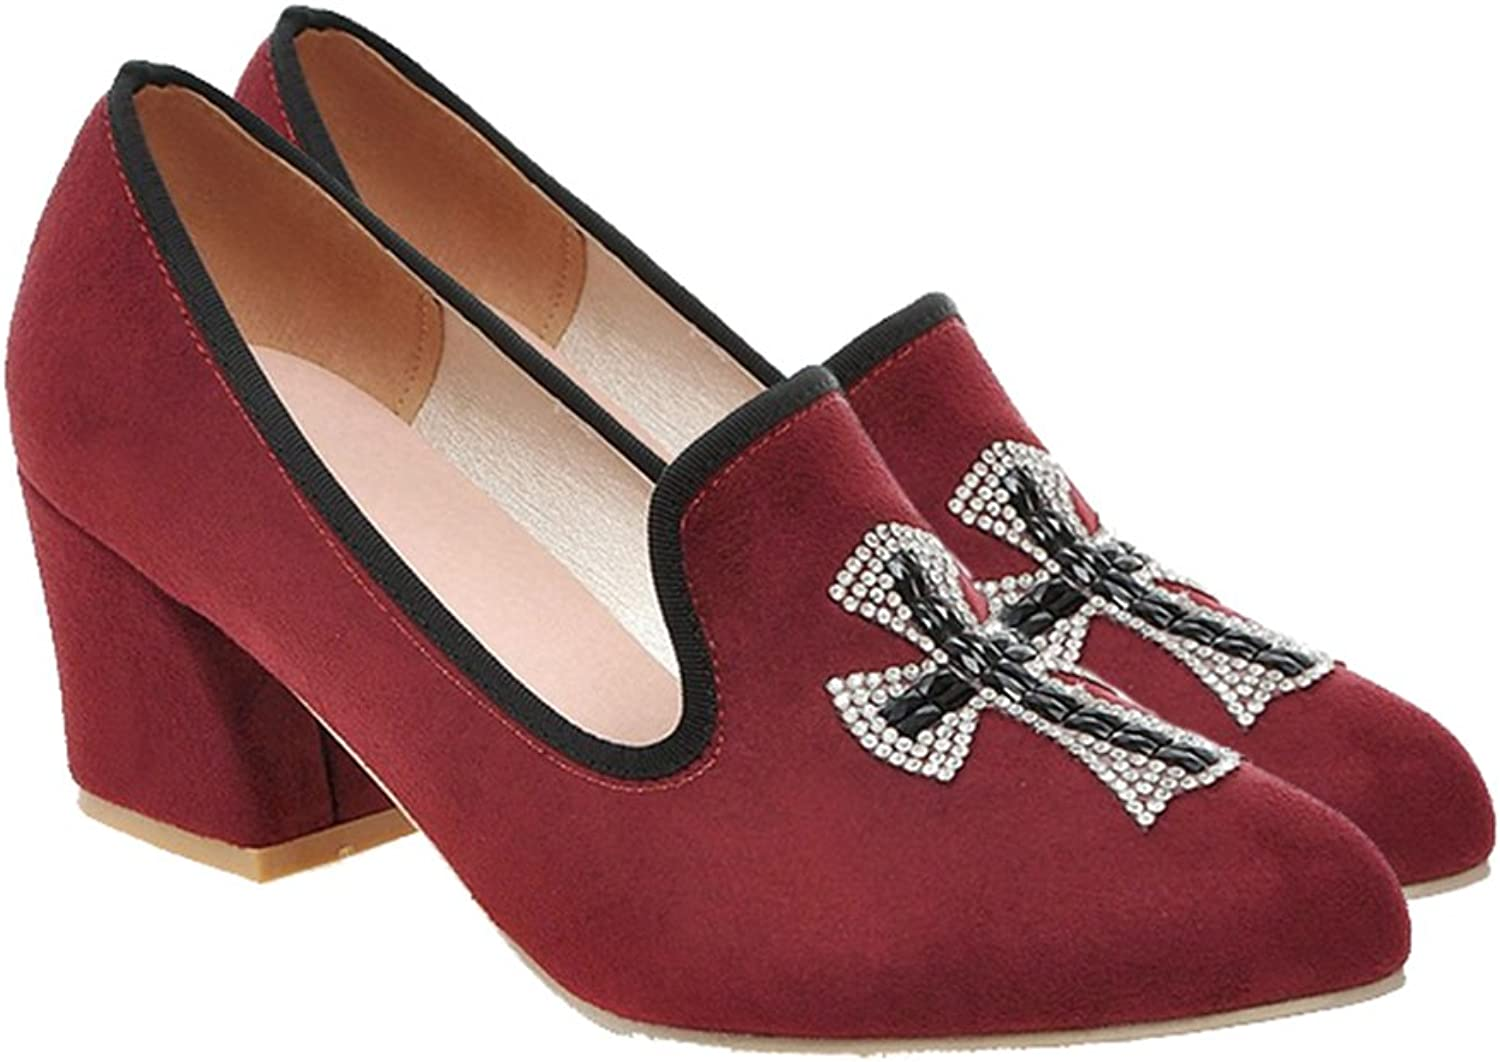 Middle Heel Thin shoes Fluff Pointed Low Uppers Casual wine red 39